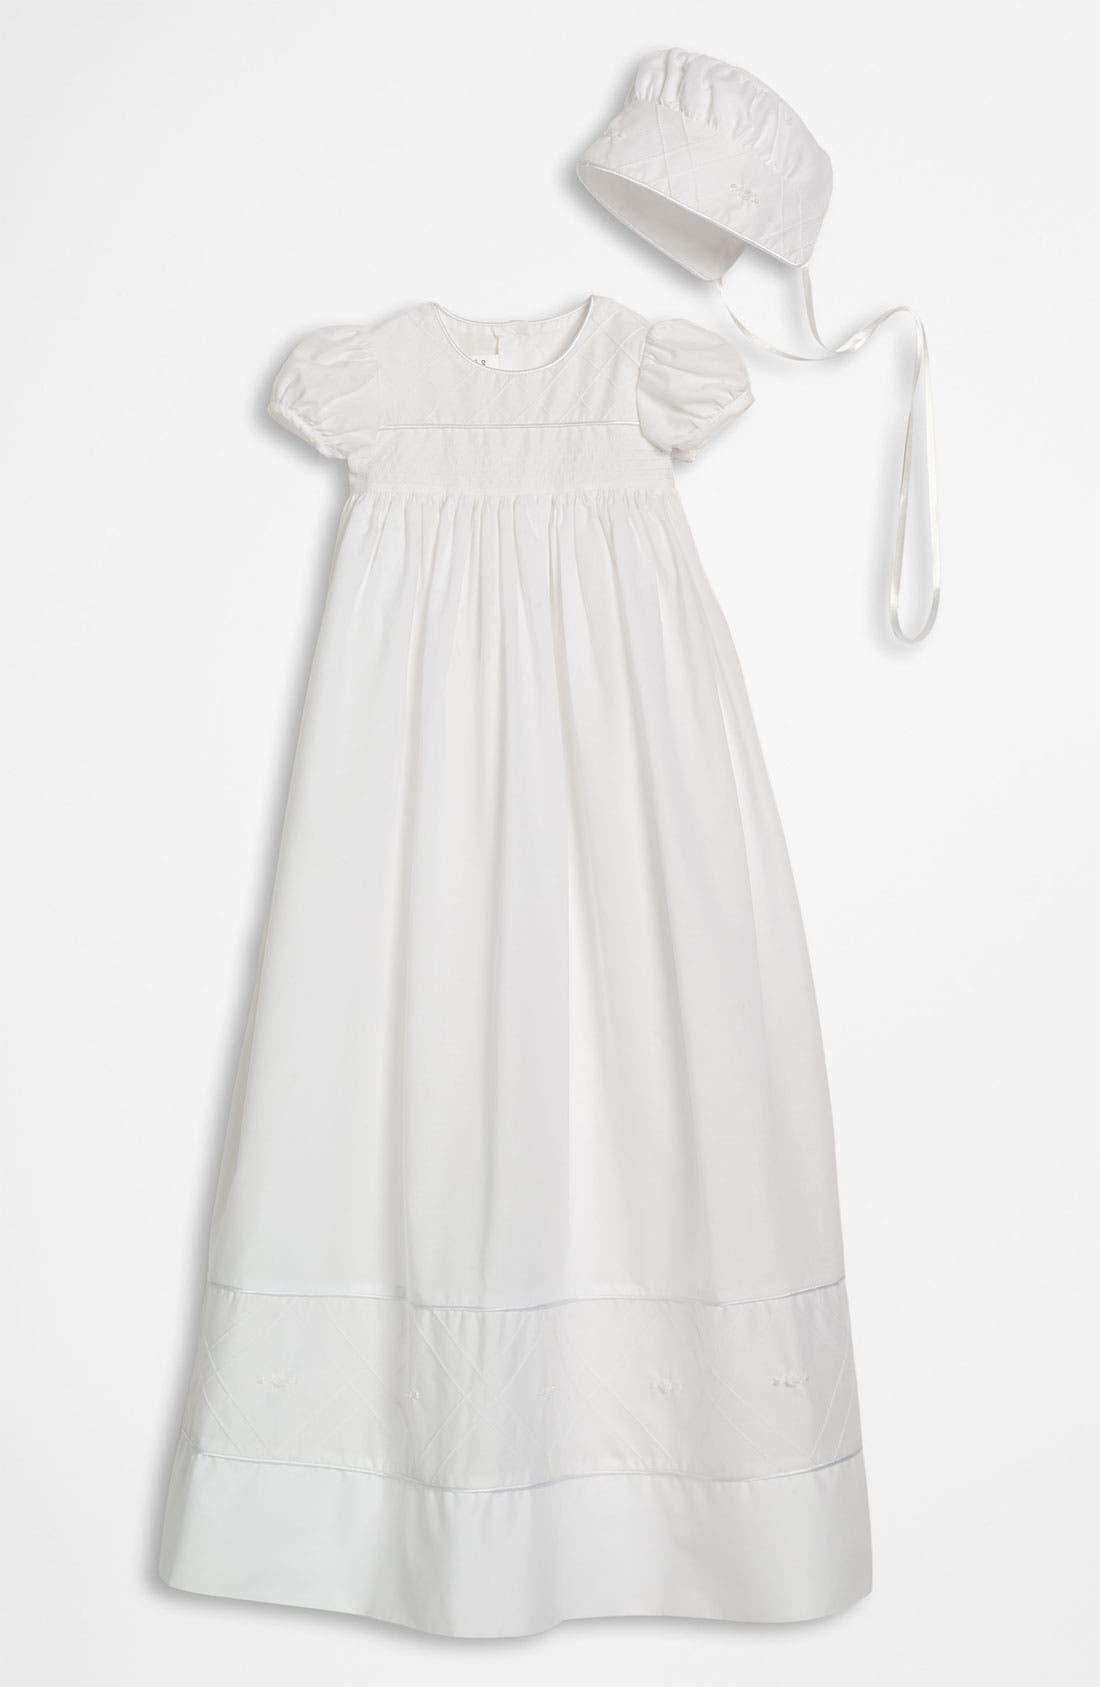 Main Image - Little Things Mean a Lot Gown & Bonnet (Baby)